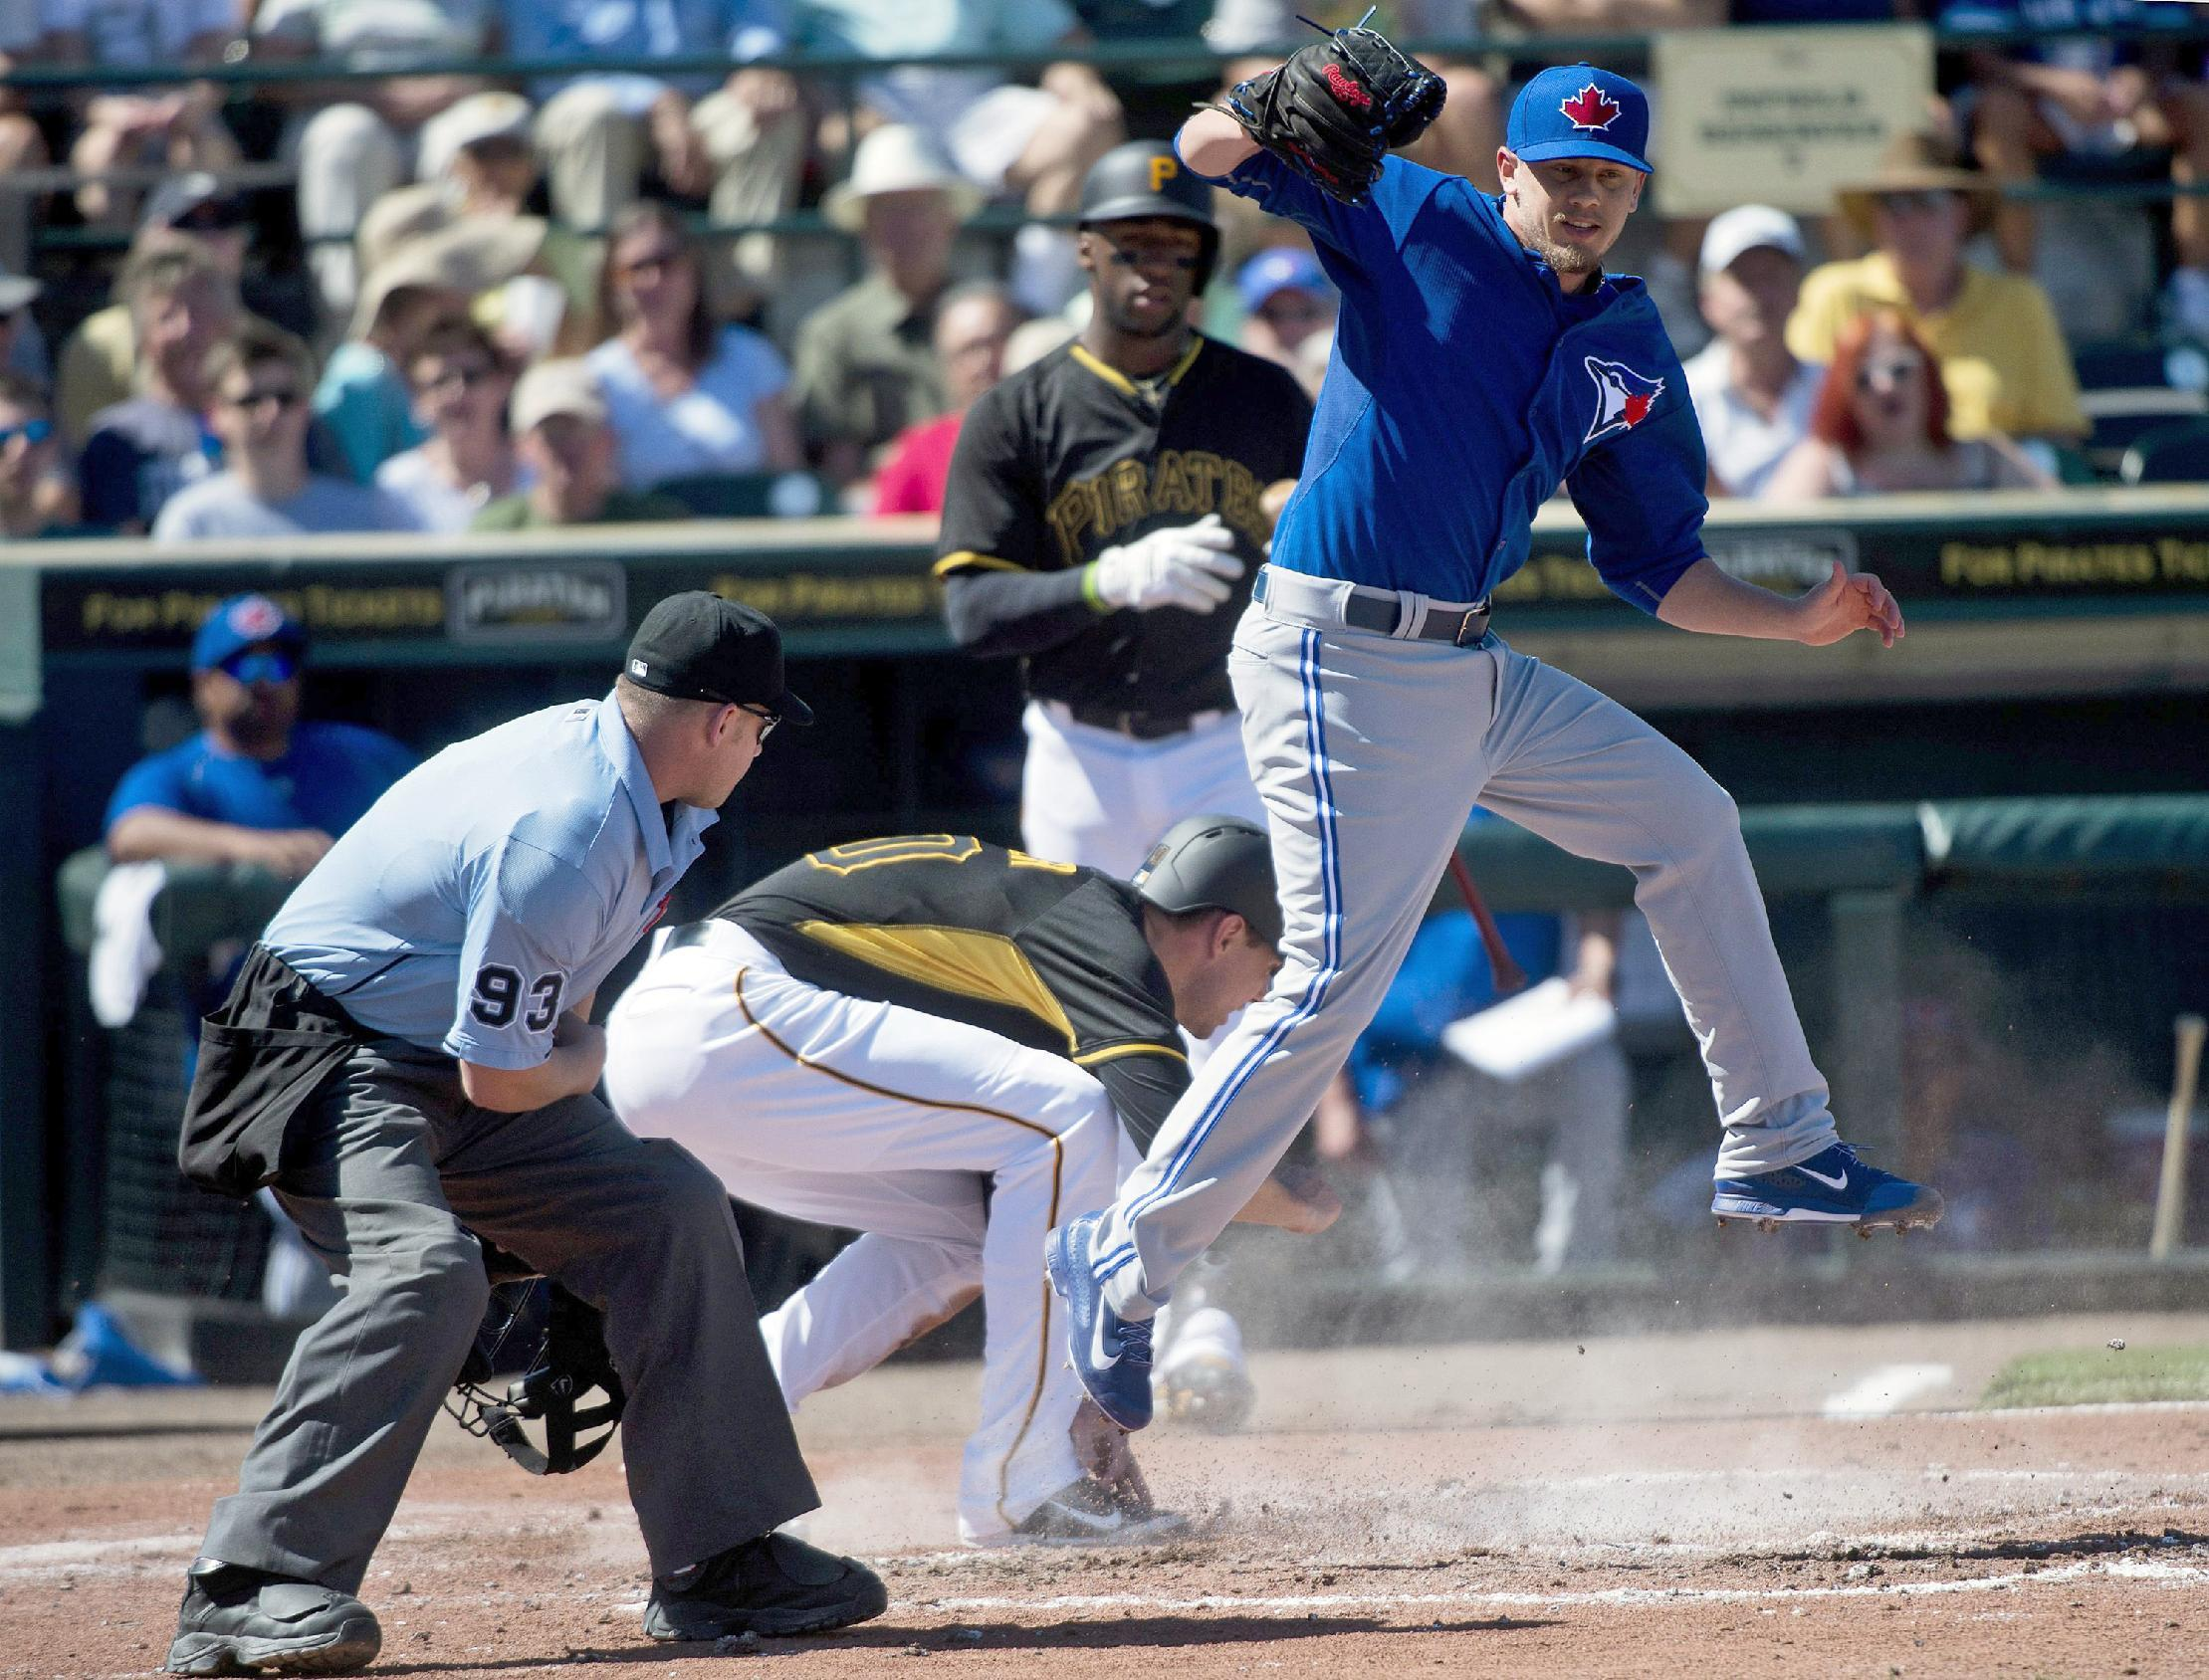 Pillar's RBI double leads Blue Jays past Pirates 4-1